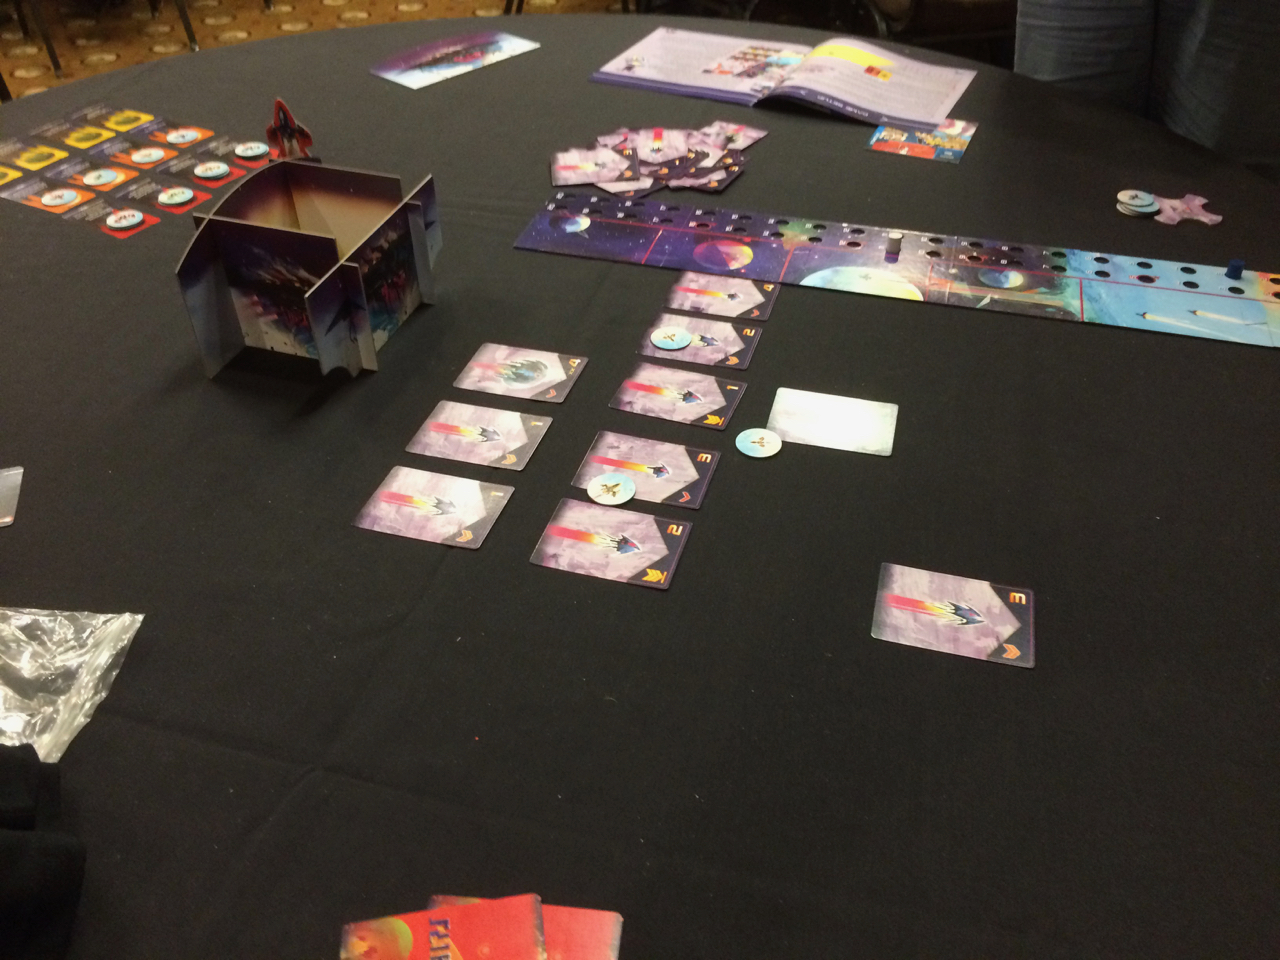 Flipships: a new dexterity game we tried out.